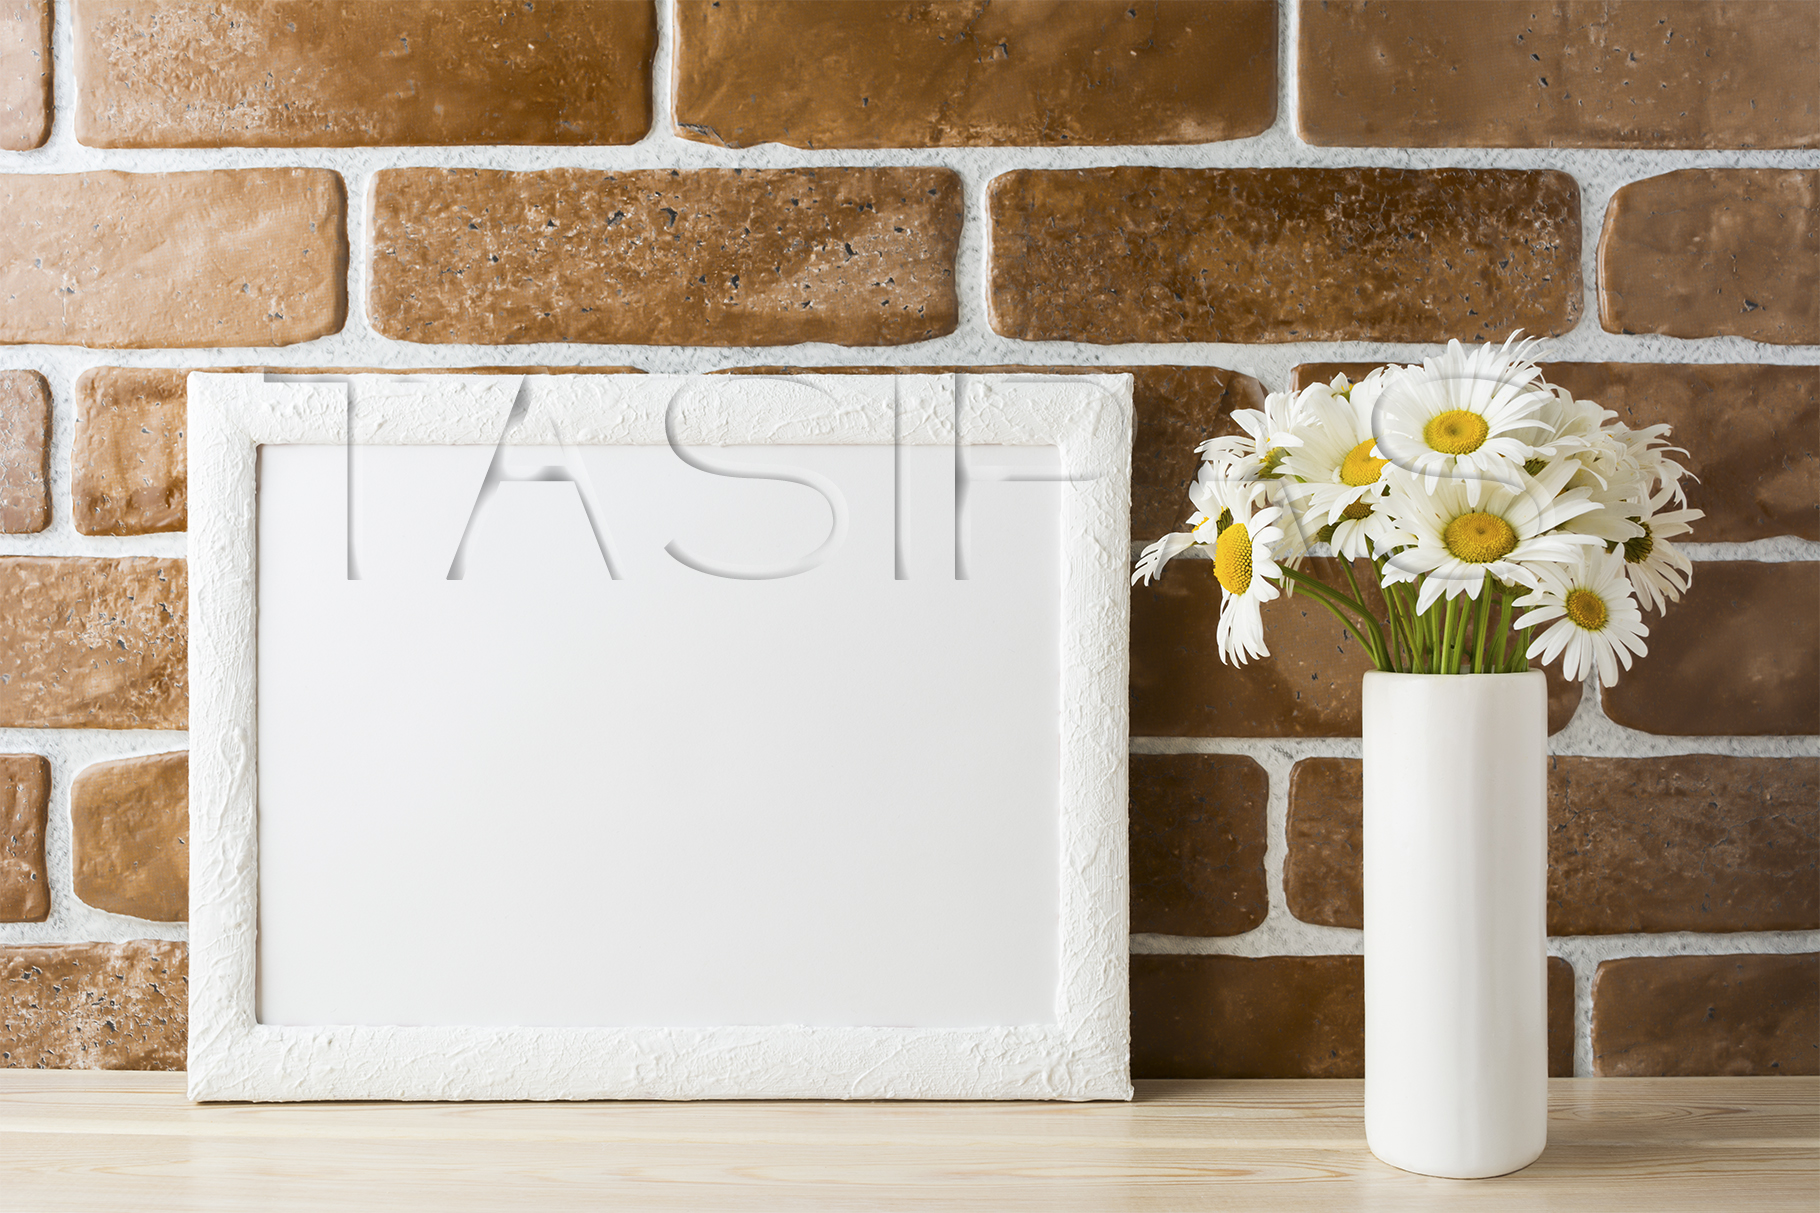 White landscape frame mockup with daisy bouquet in styled vase  example image 2